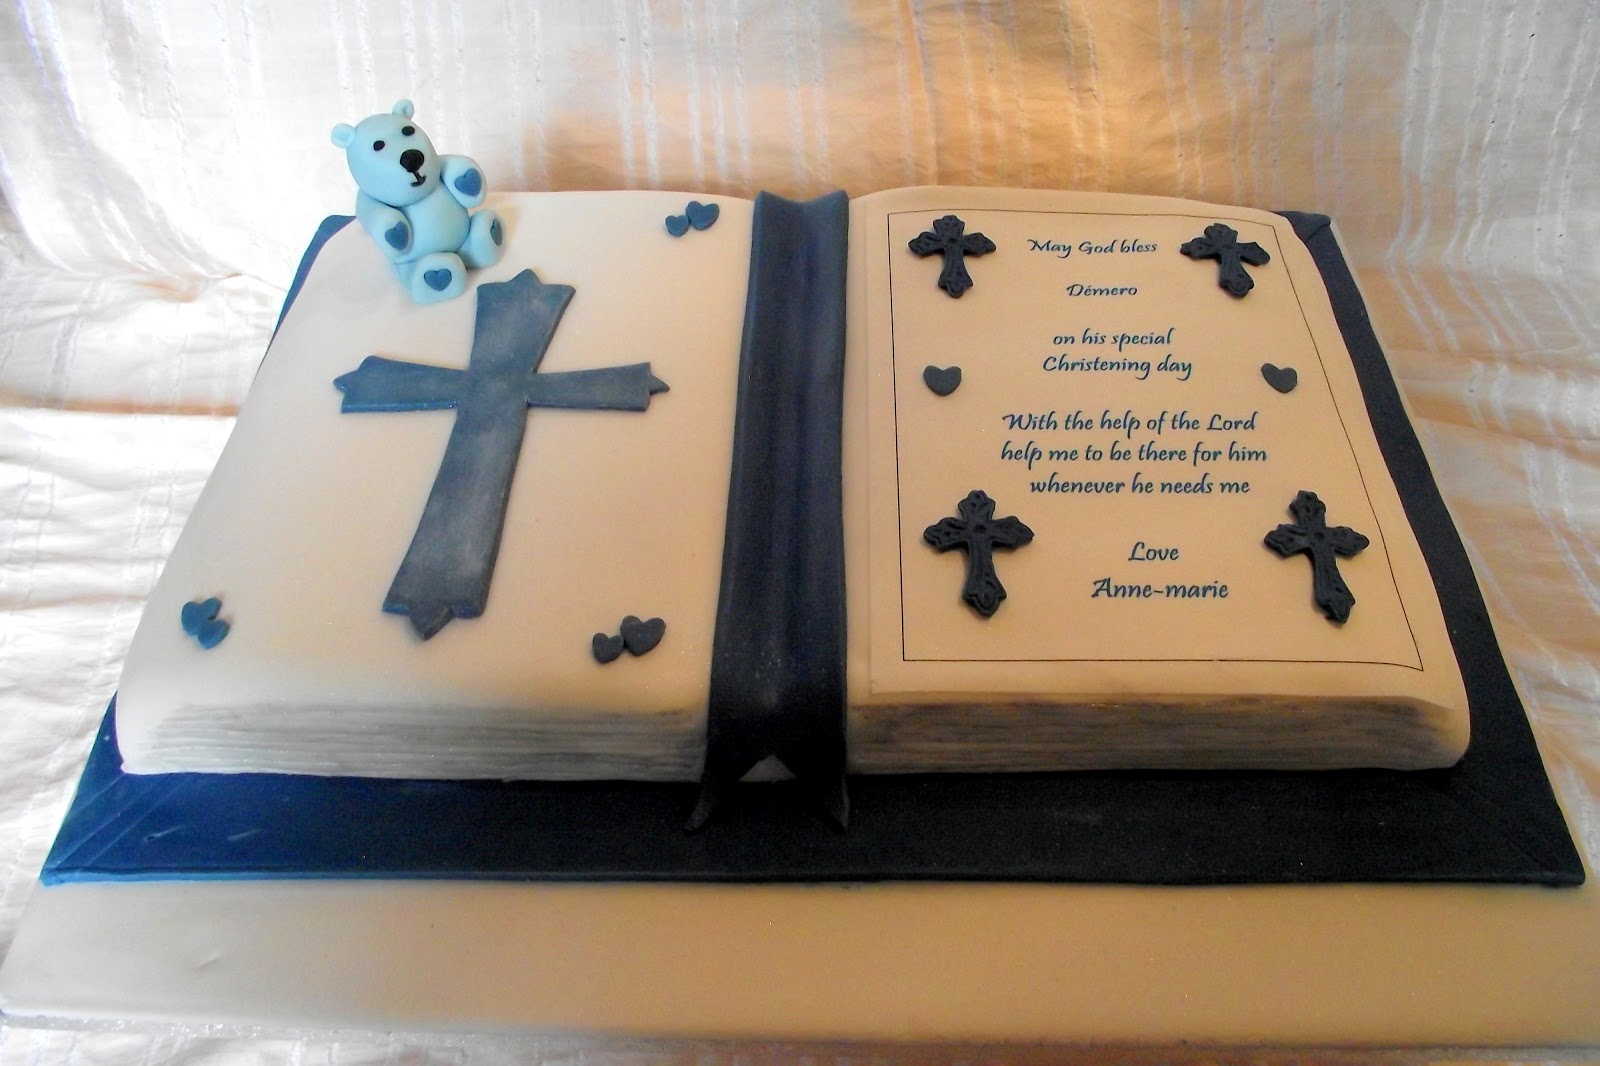 Bible Shaped Cake http://hawaiidermatology.com/bible/bible-shaped-cake-for-christening.htm